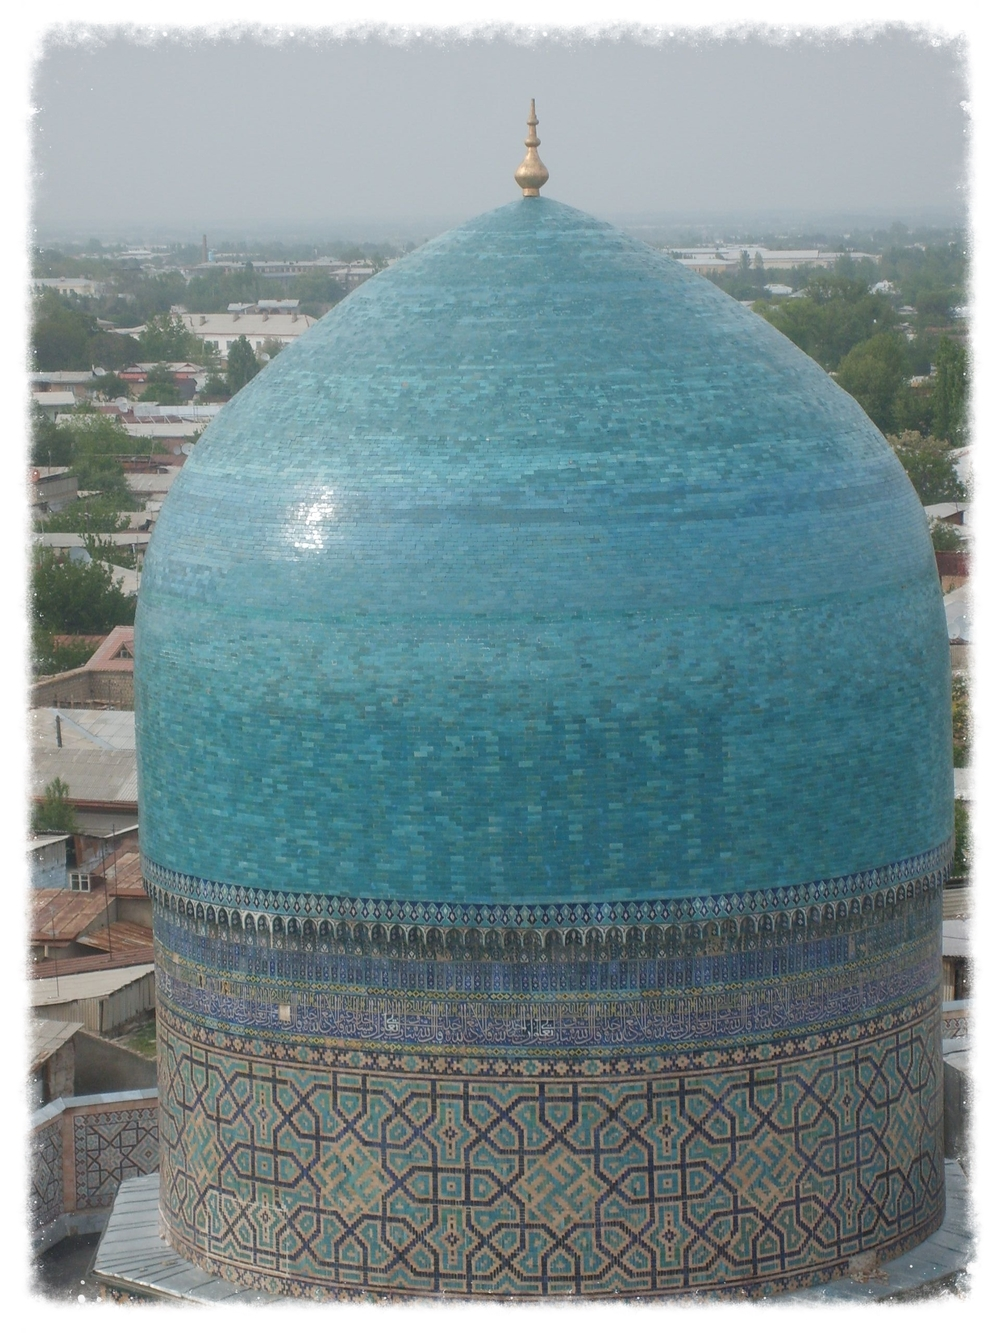 Cupola of the Tilla Kari Mosque in Samarkand, Uzbekistan.